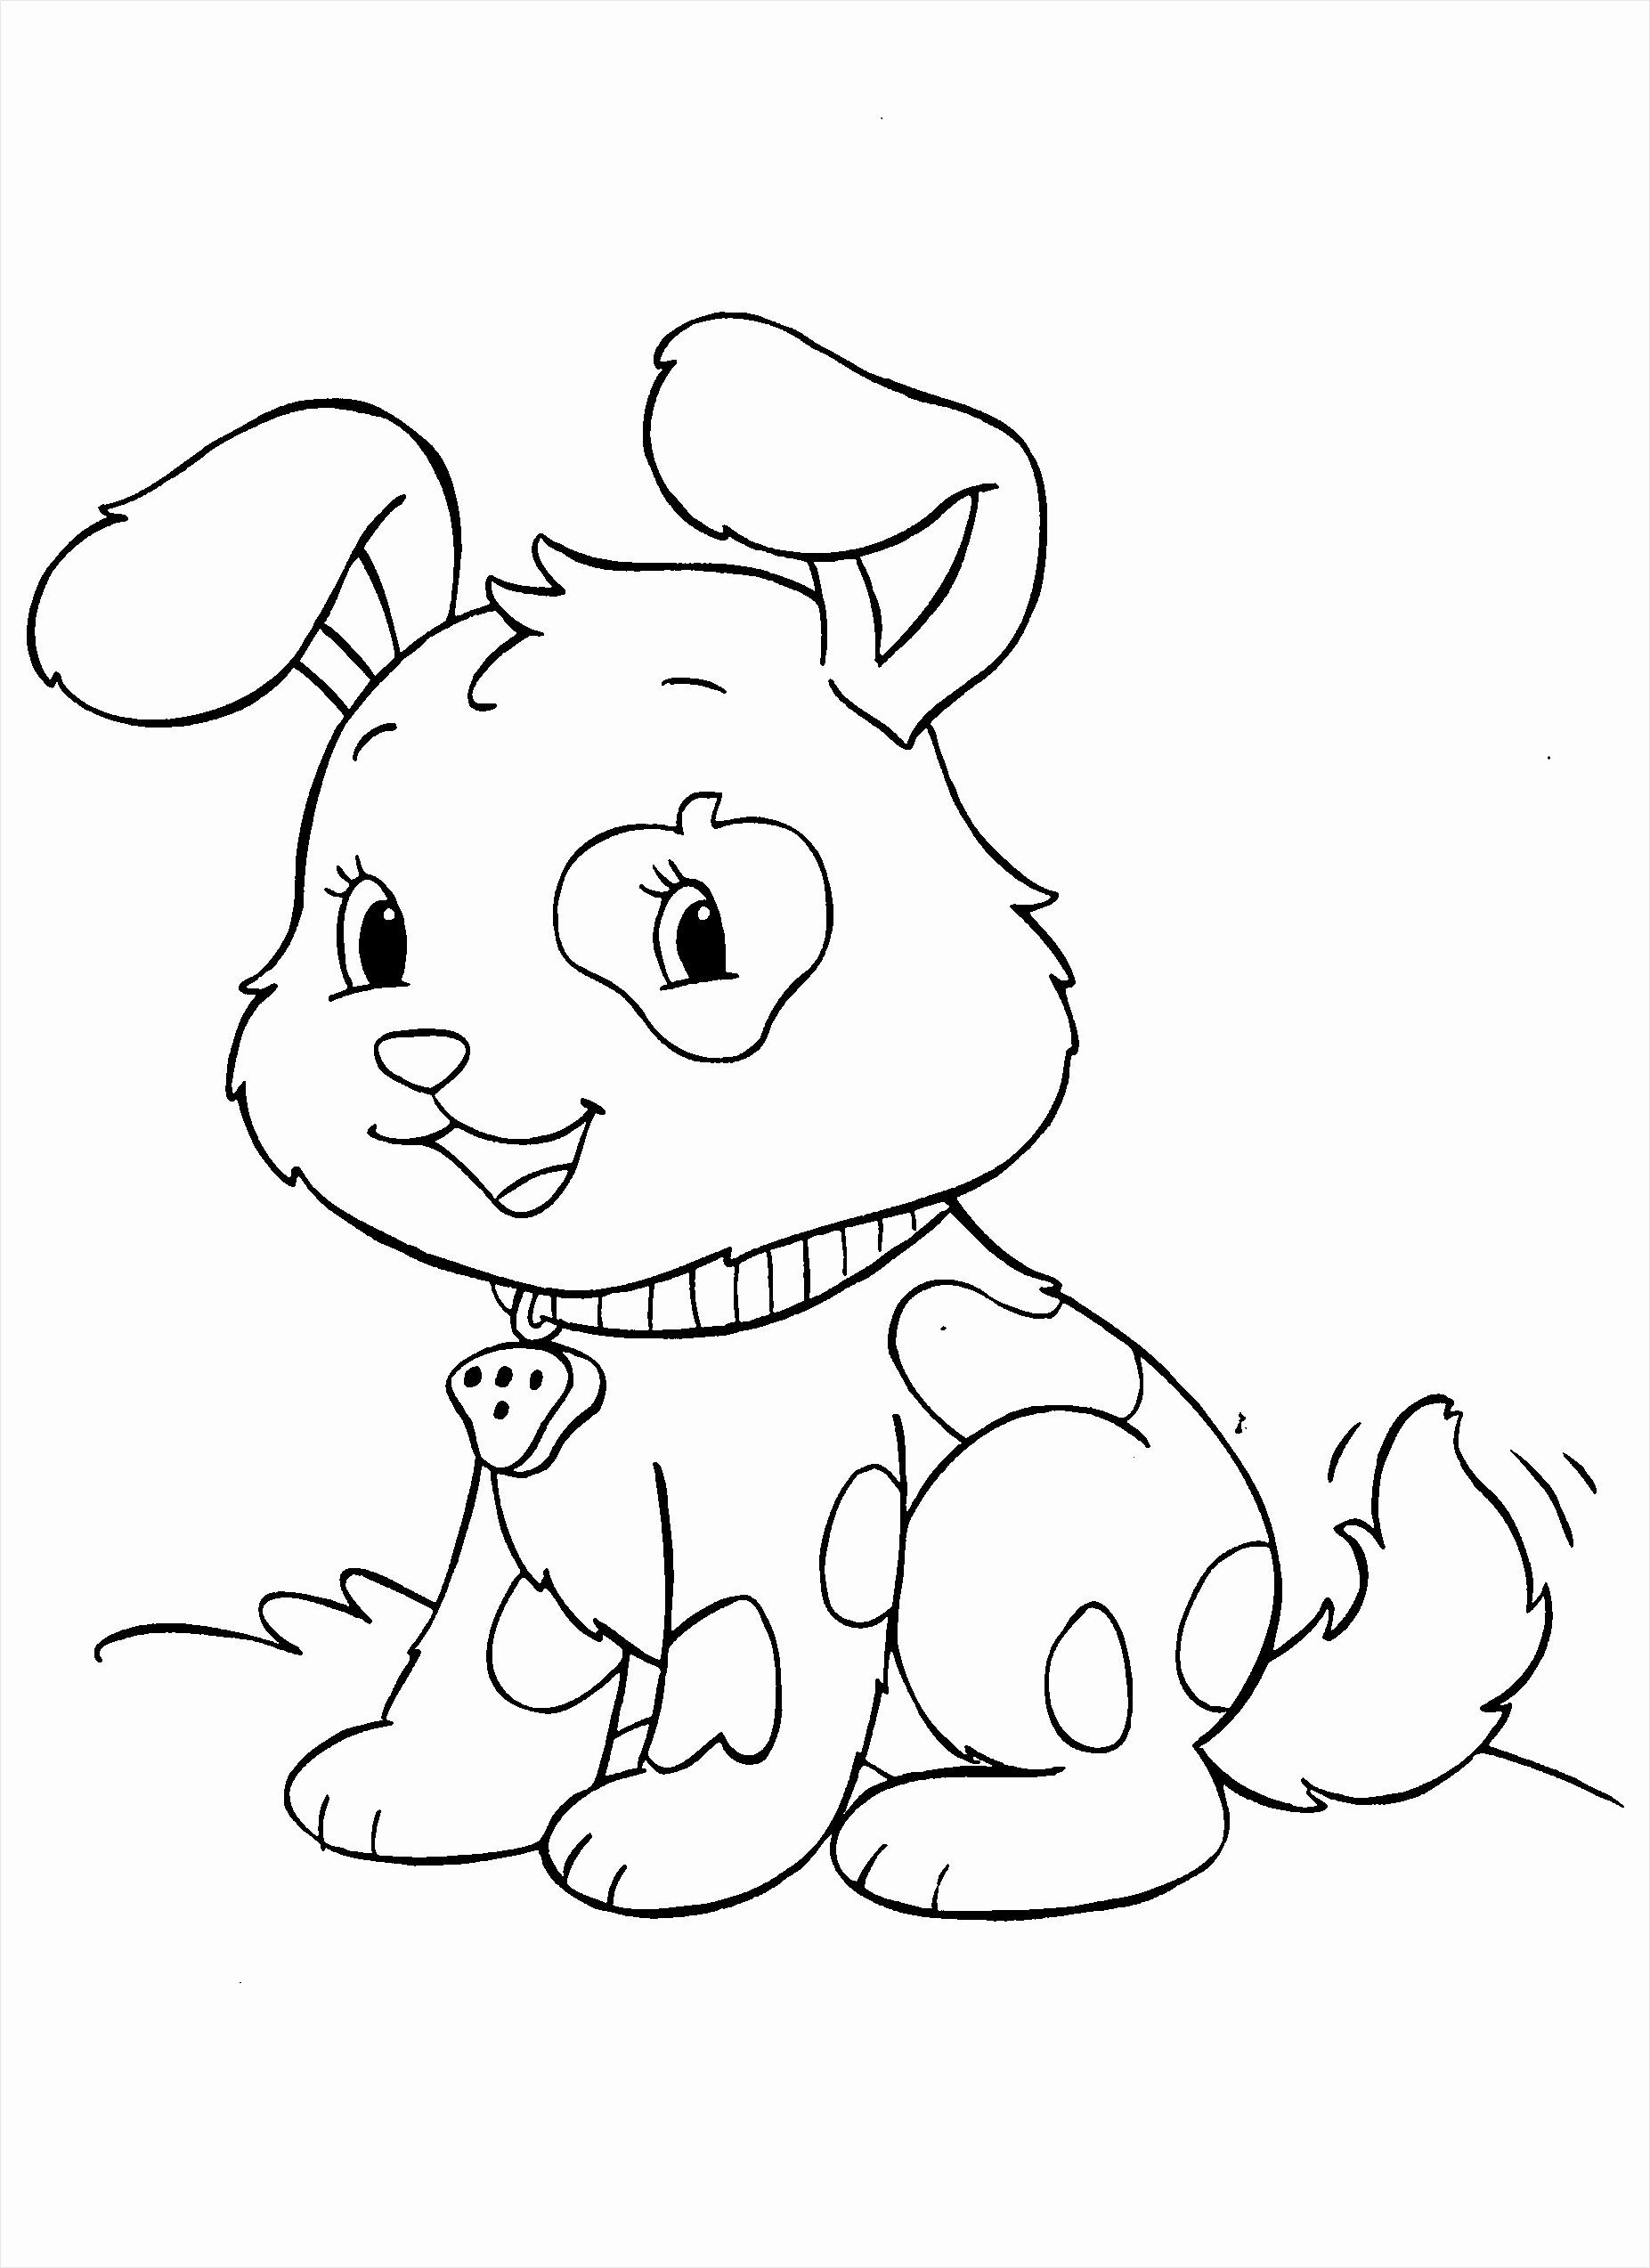 Coloring Animals Eyes In 2020 Puppy Coloring Pages Animal Coloring Books Farm Animal Coloring Pages